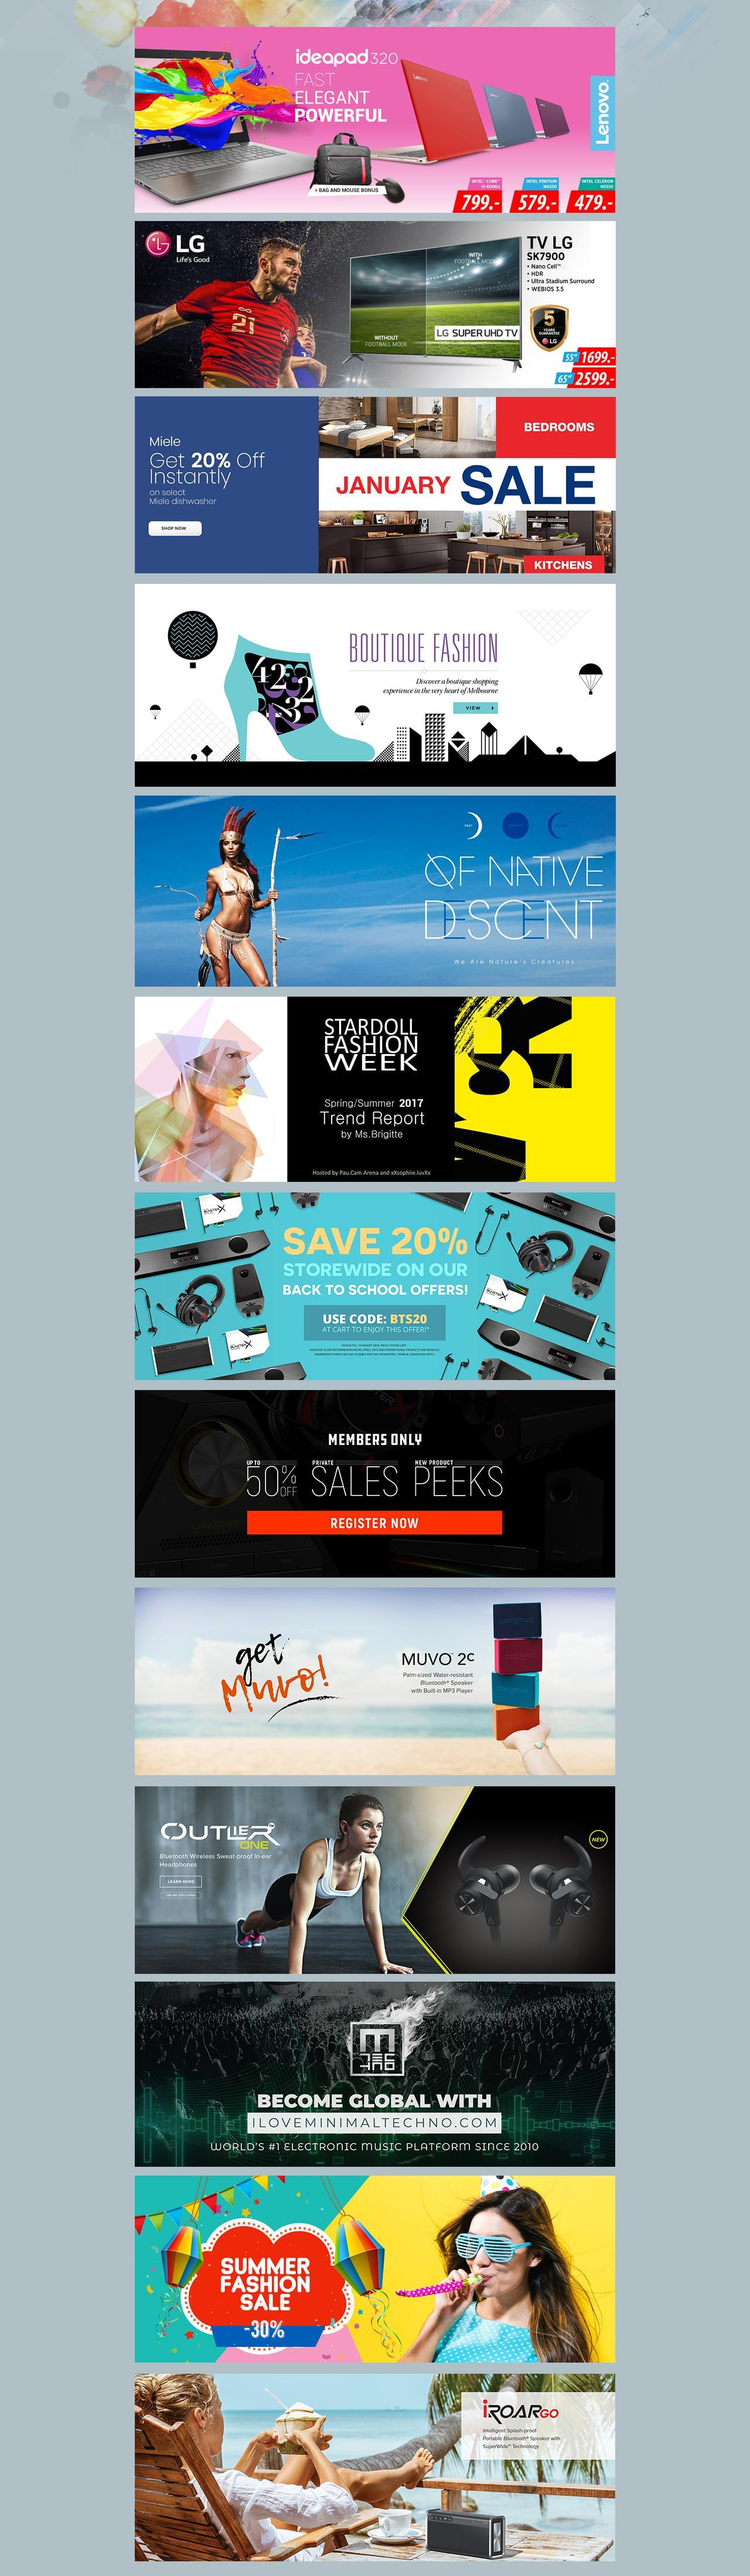 Modern Homepage Banner for Slider or Fb Cover Design by Bandidos - 113295